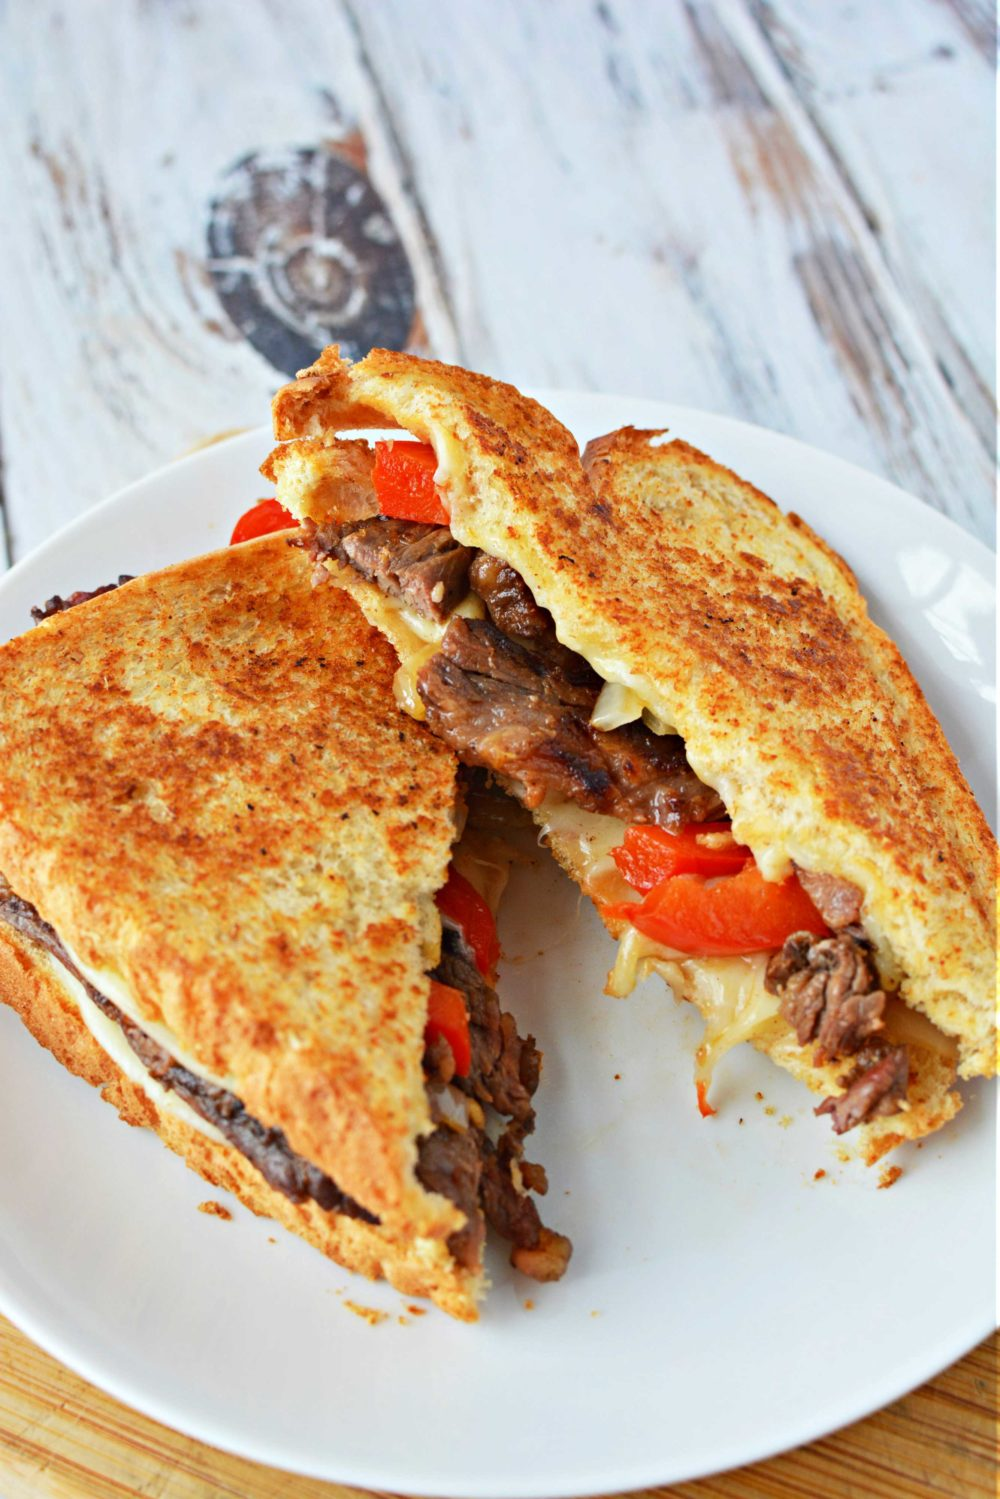 Philly cheesesteak grilled cheese with onion, red bell peppers, hot sauce and provolone cheese